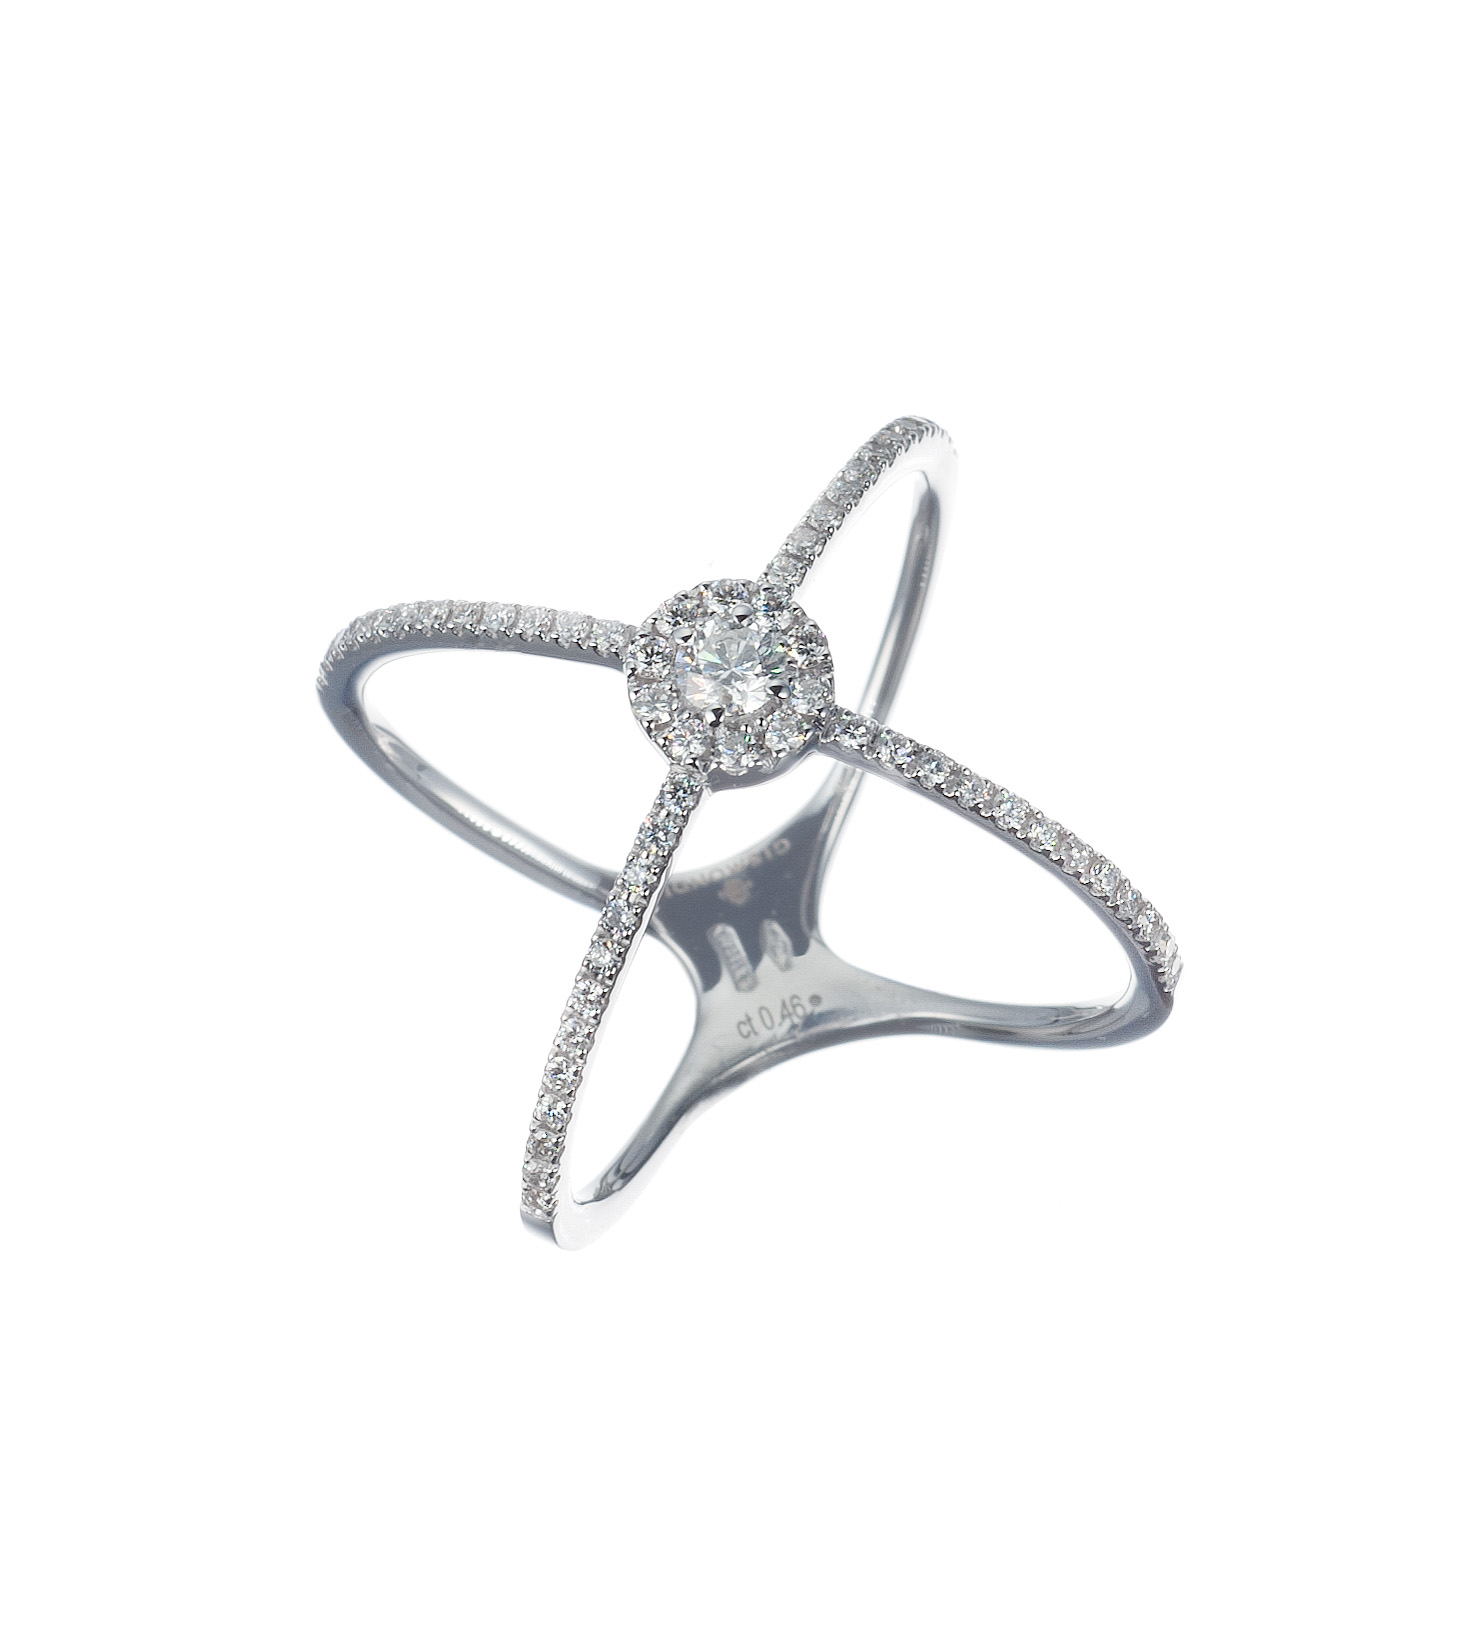 Diamond crossover ring in white gold